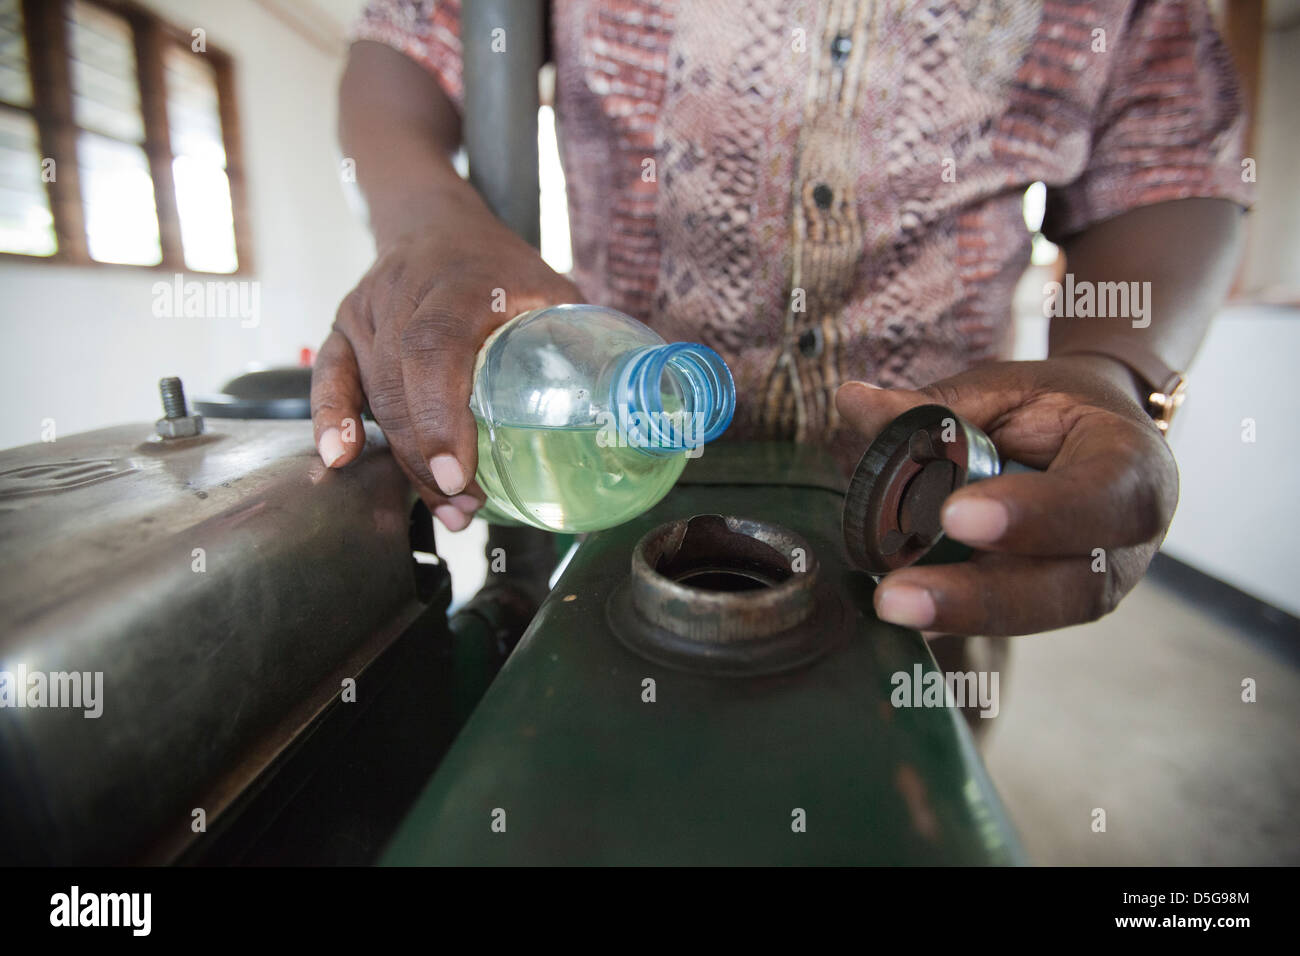 Man pouring Jatropha biofuel from a bottle to fuel a milling machine, Tanzania. - Stock Image